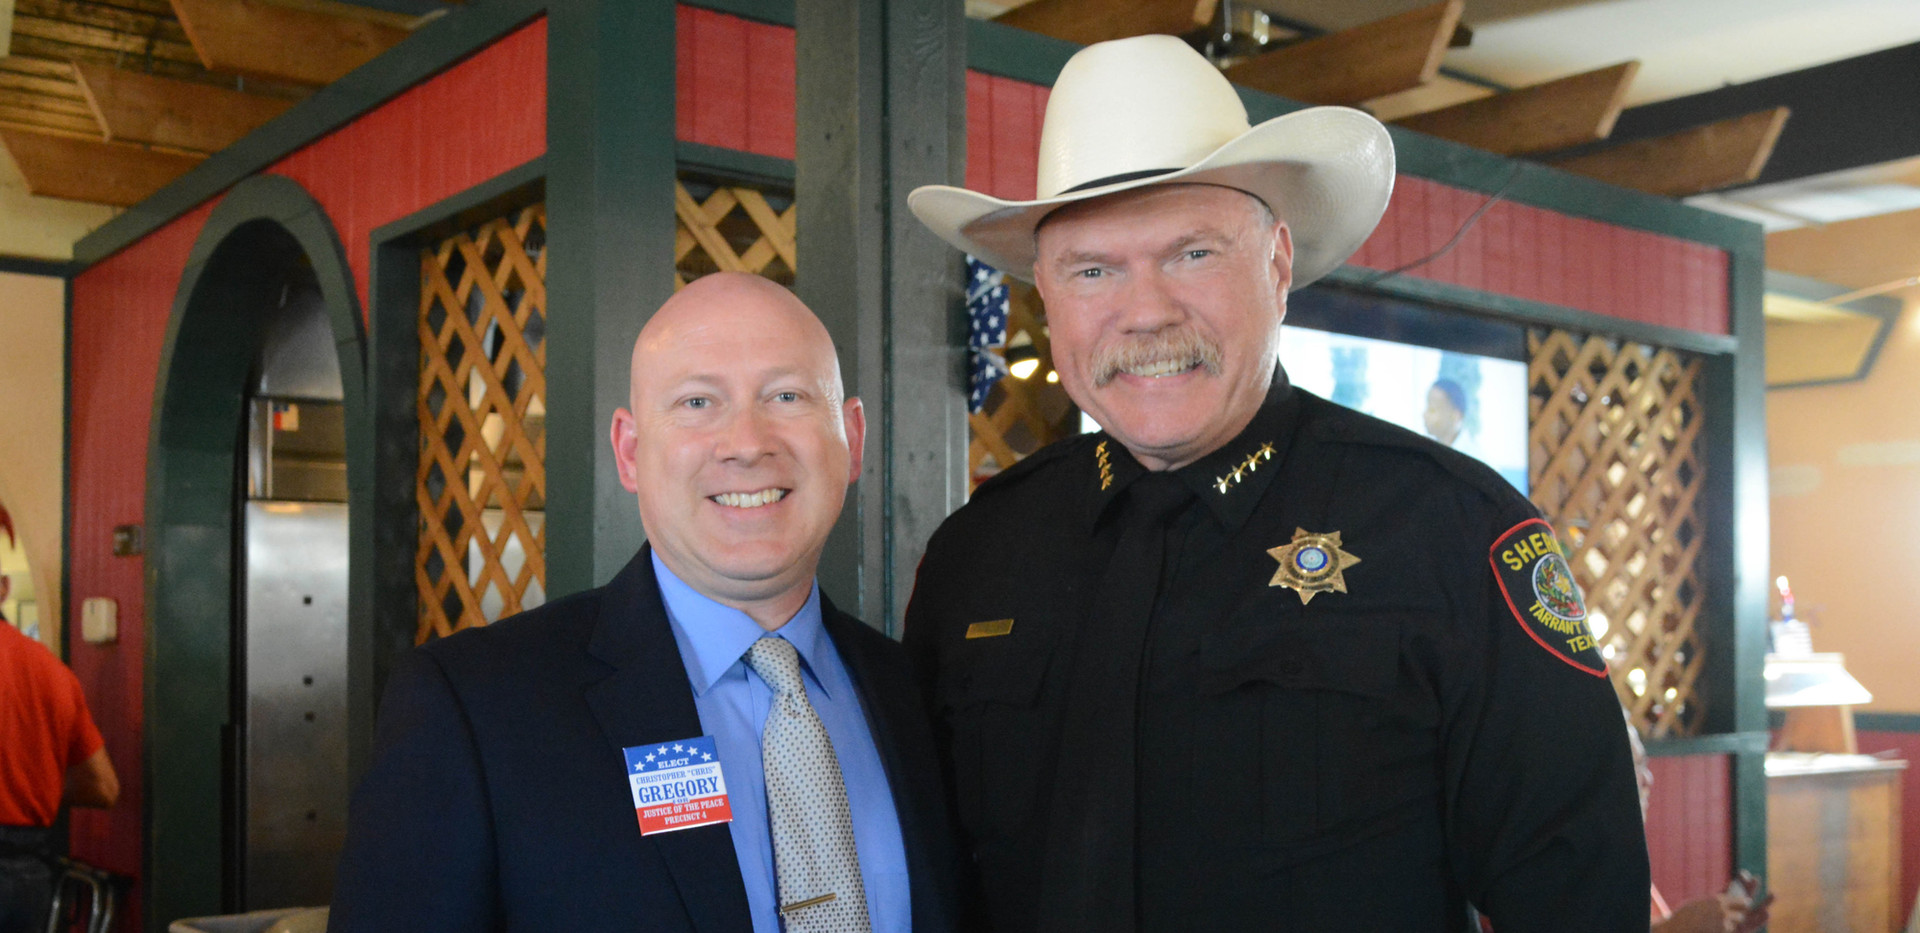 with Tarrant County Sheriff Bill Waybourn